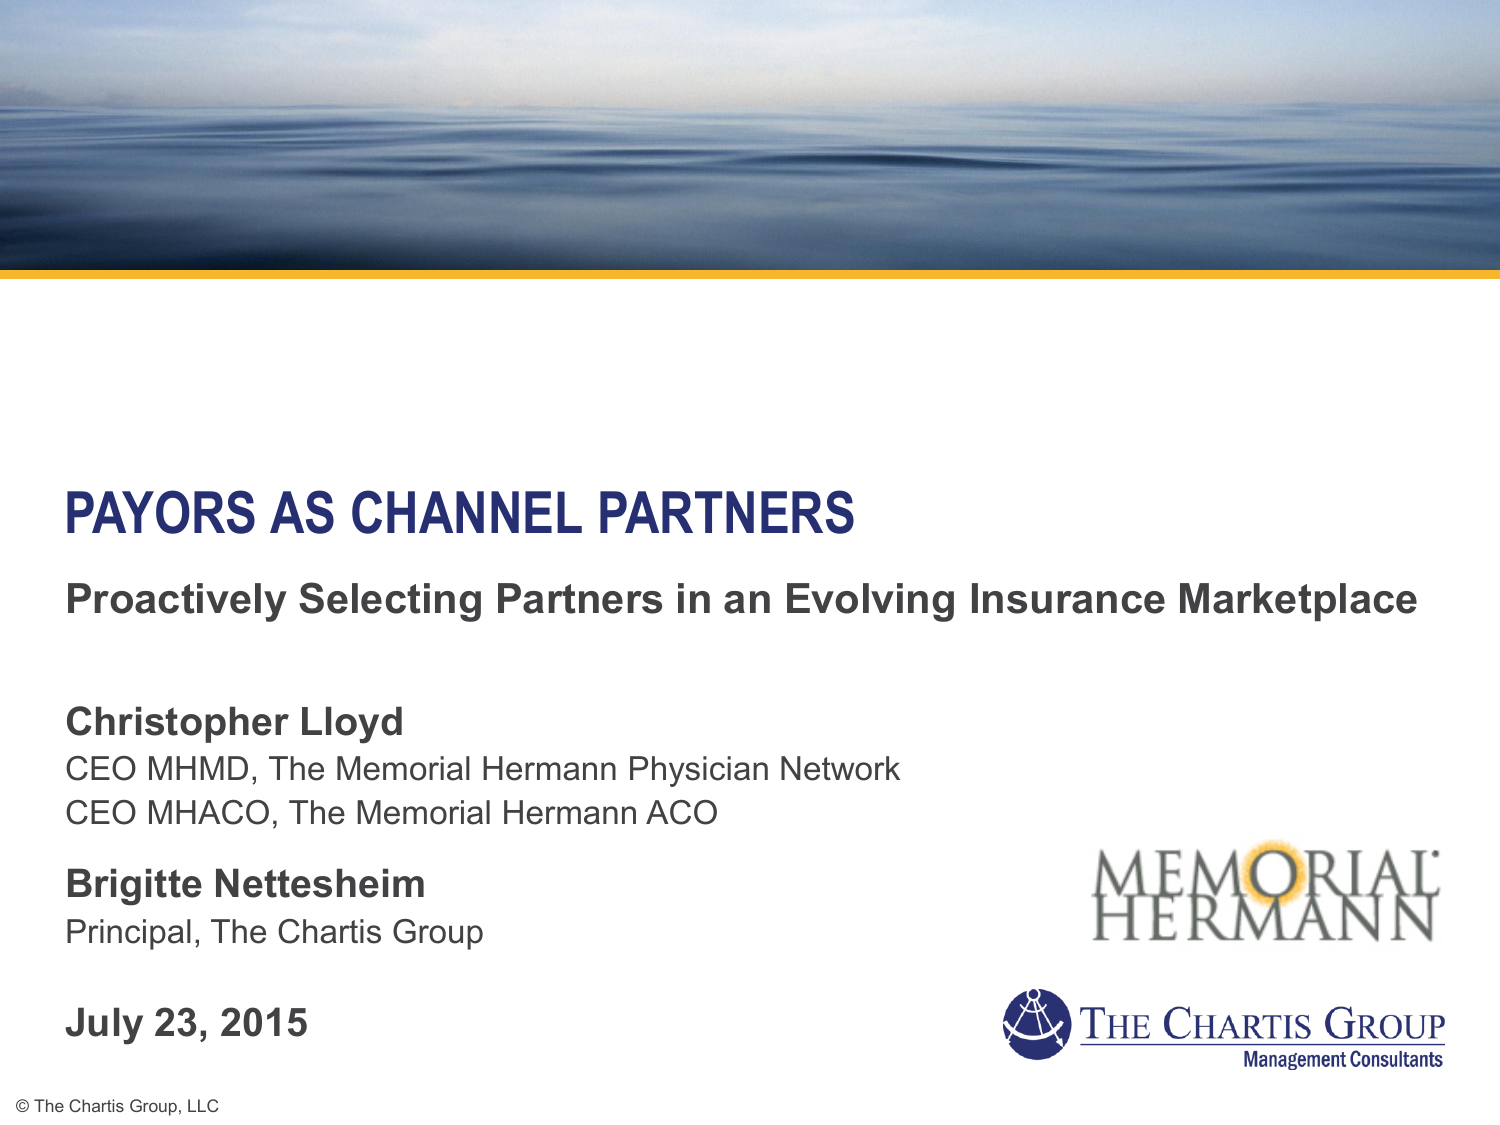 PAYORS AS CHANNEL PARTNERS